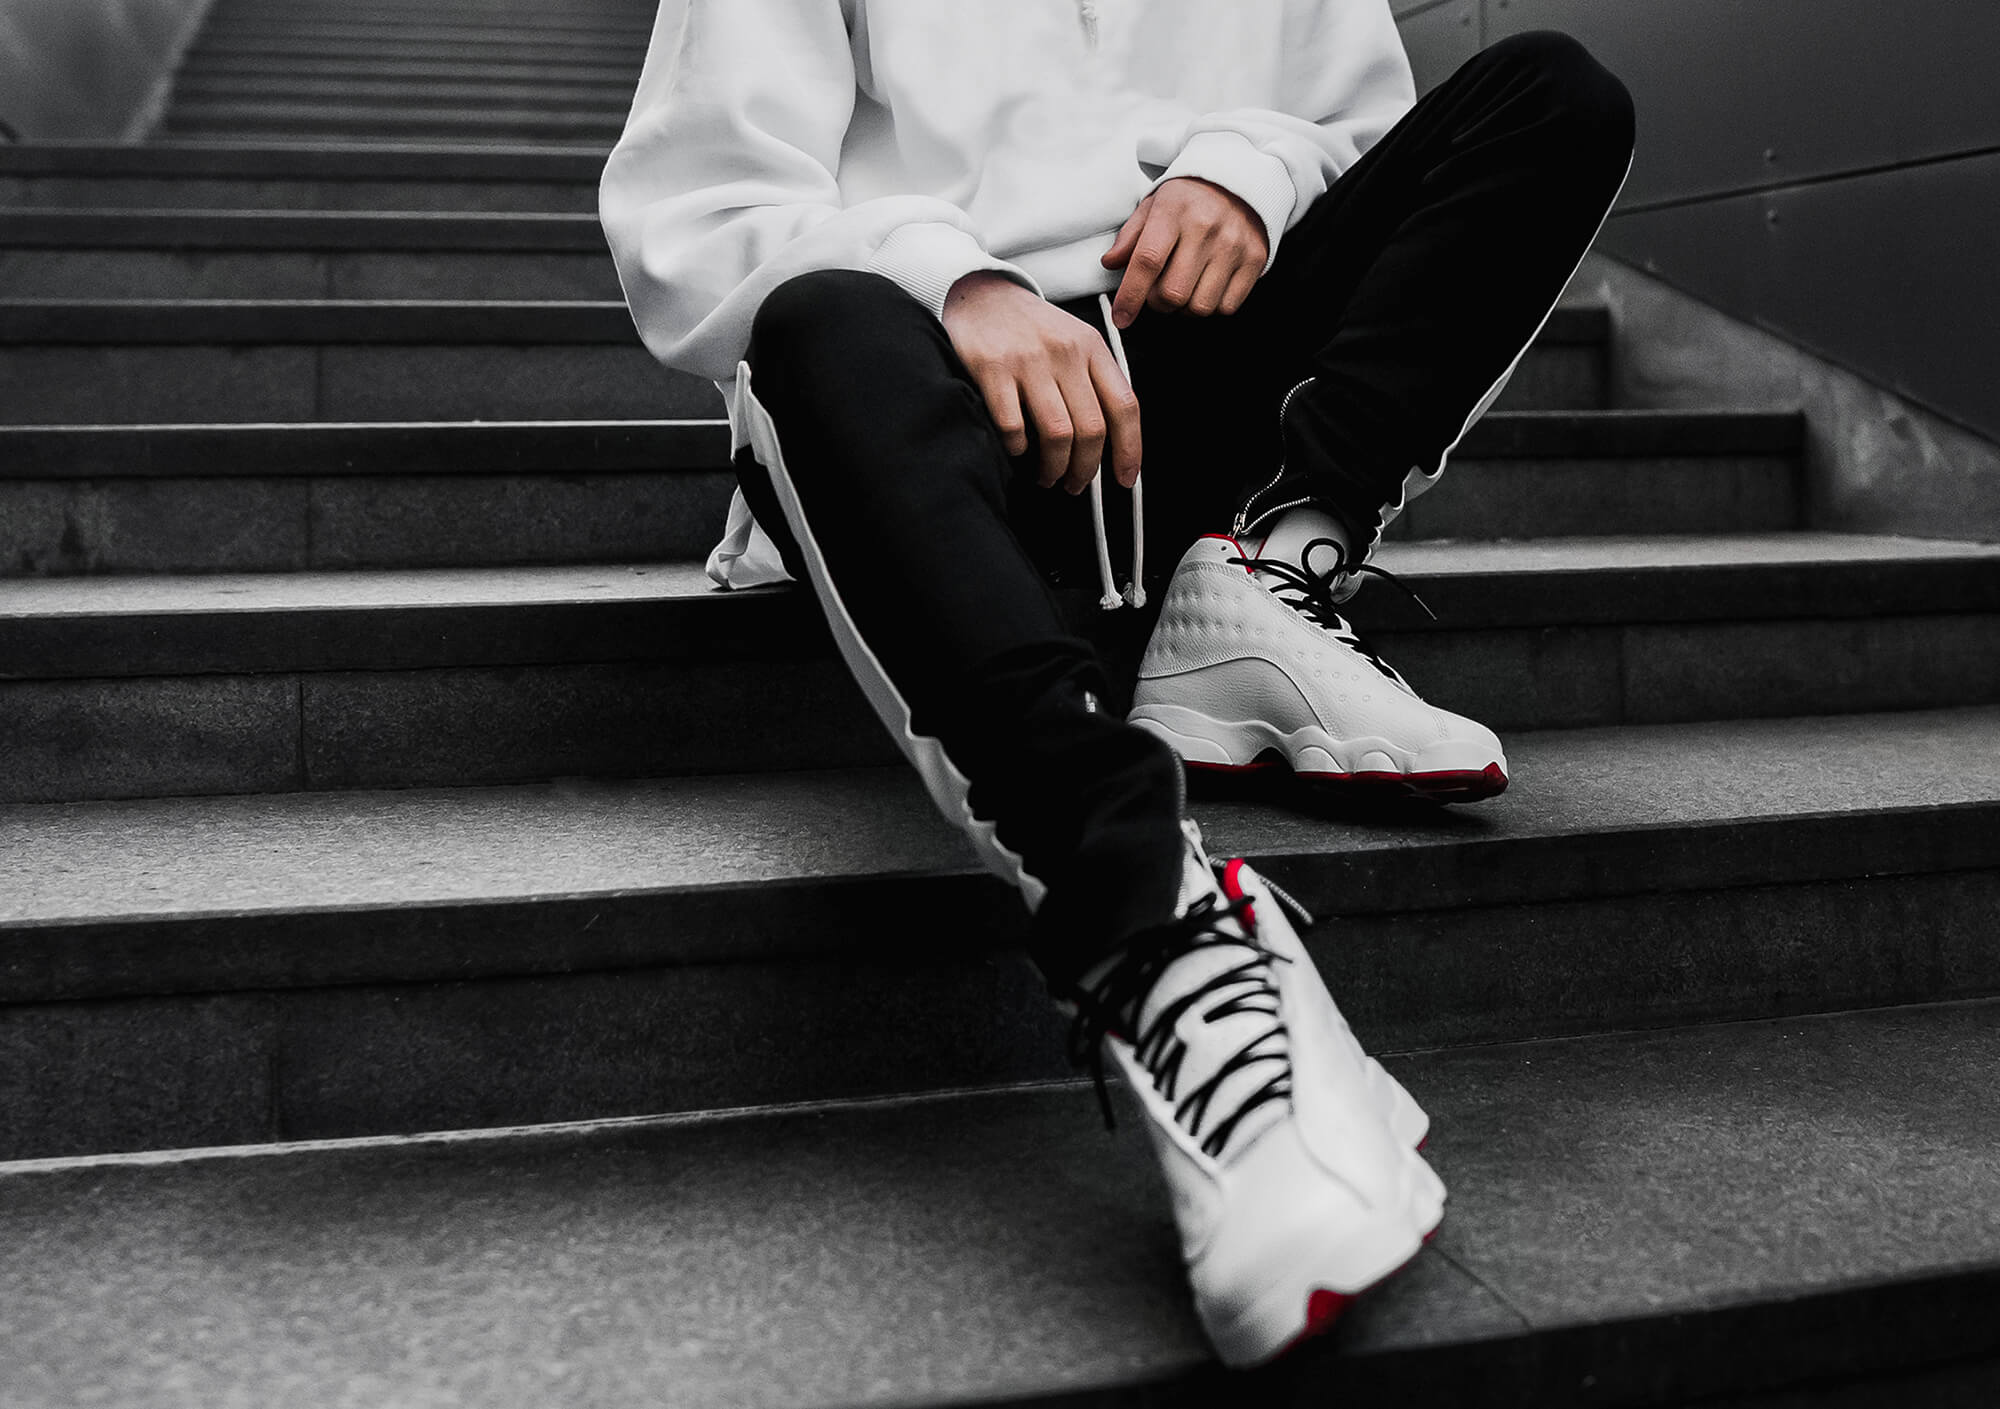 Man on stairs wearing traininers